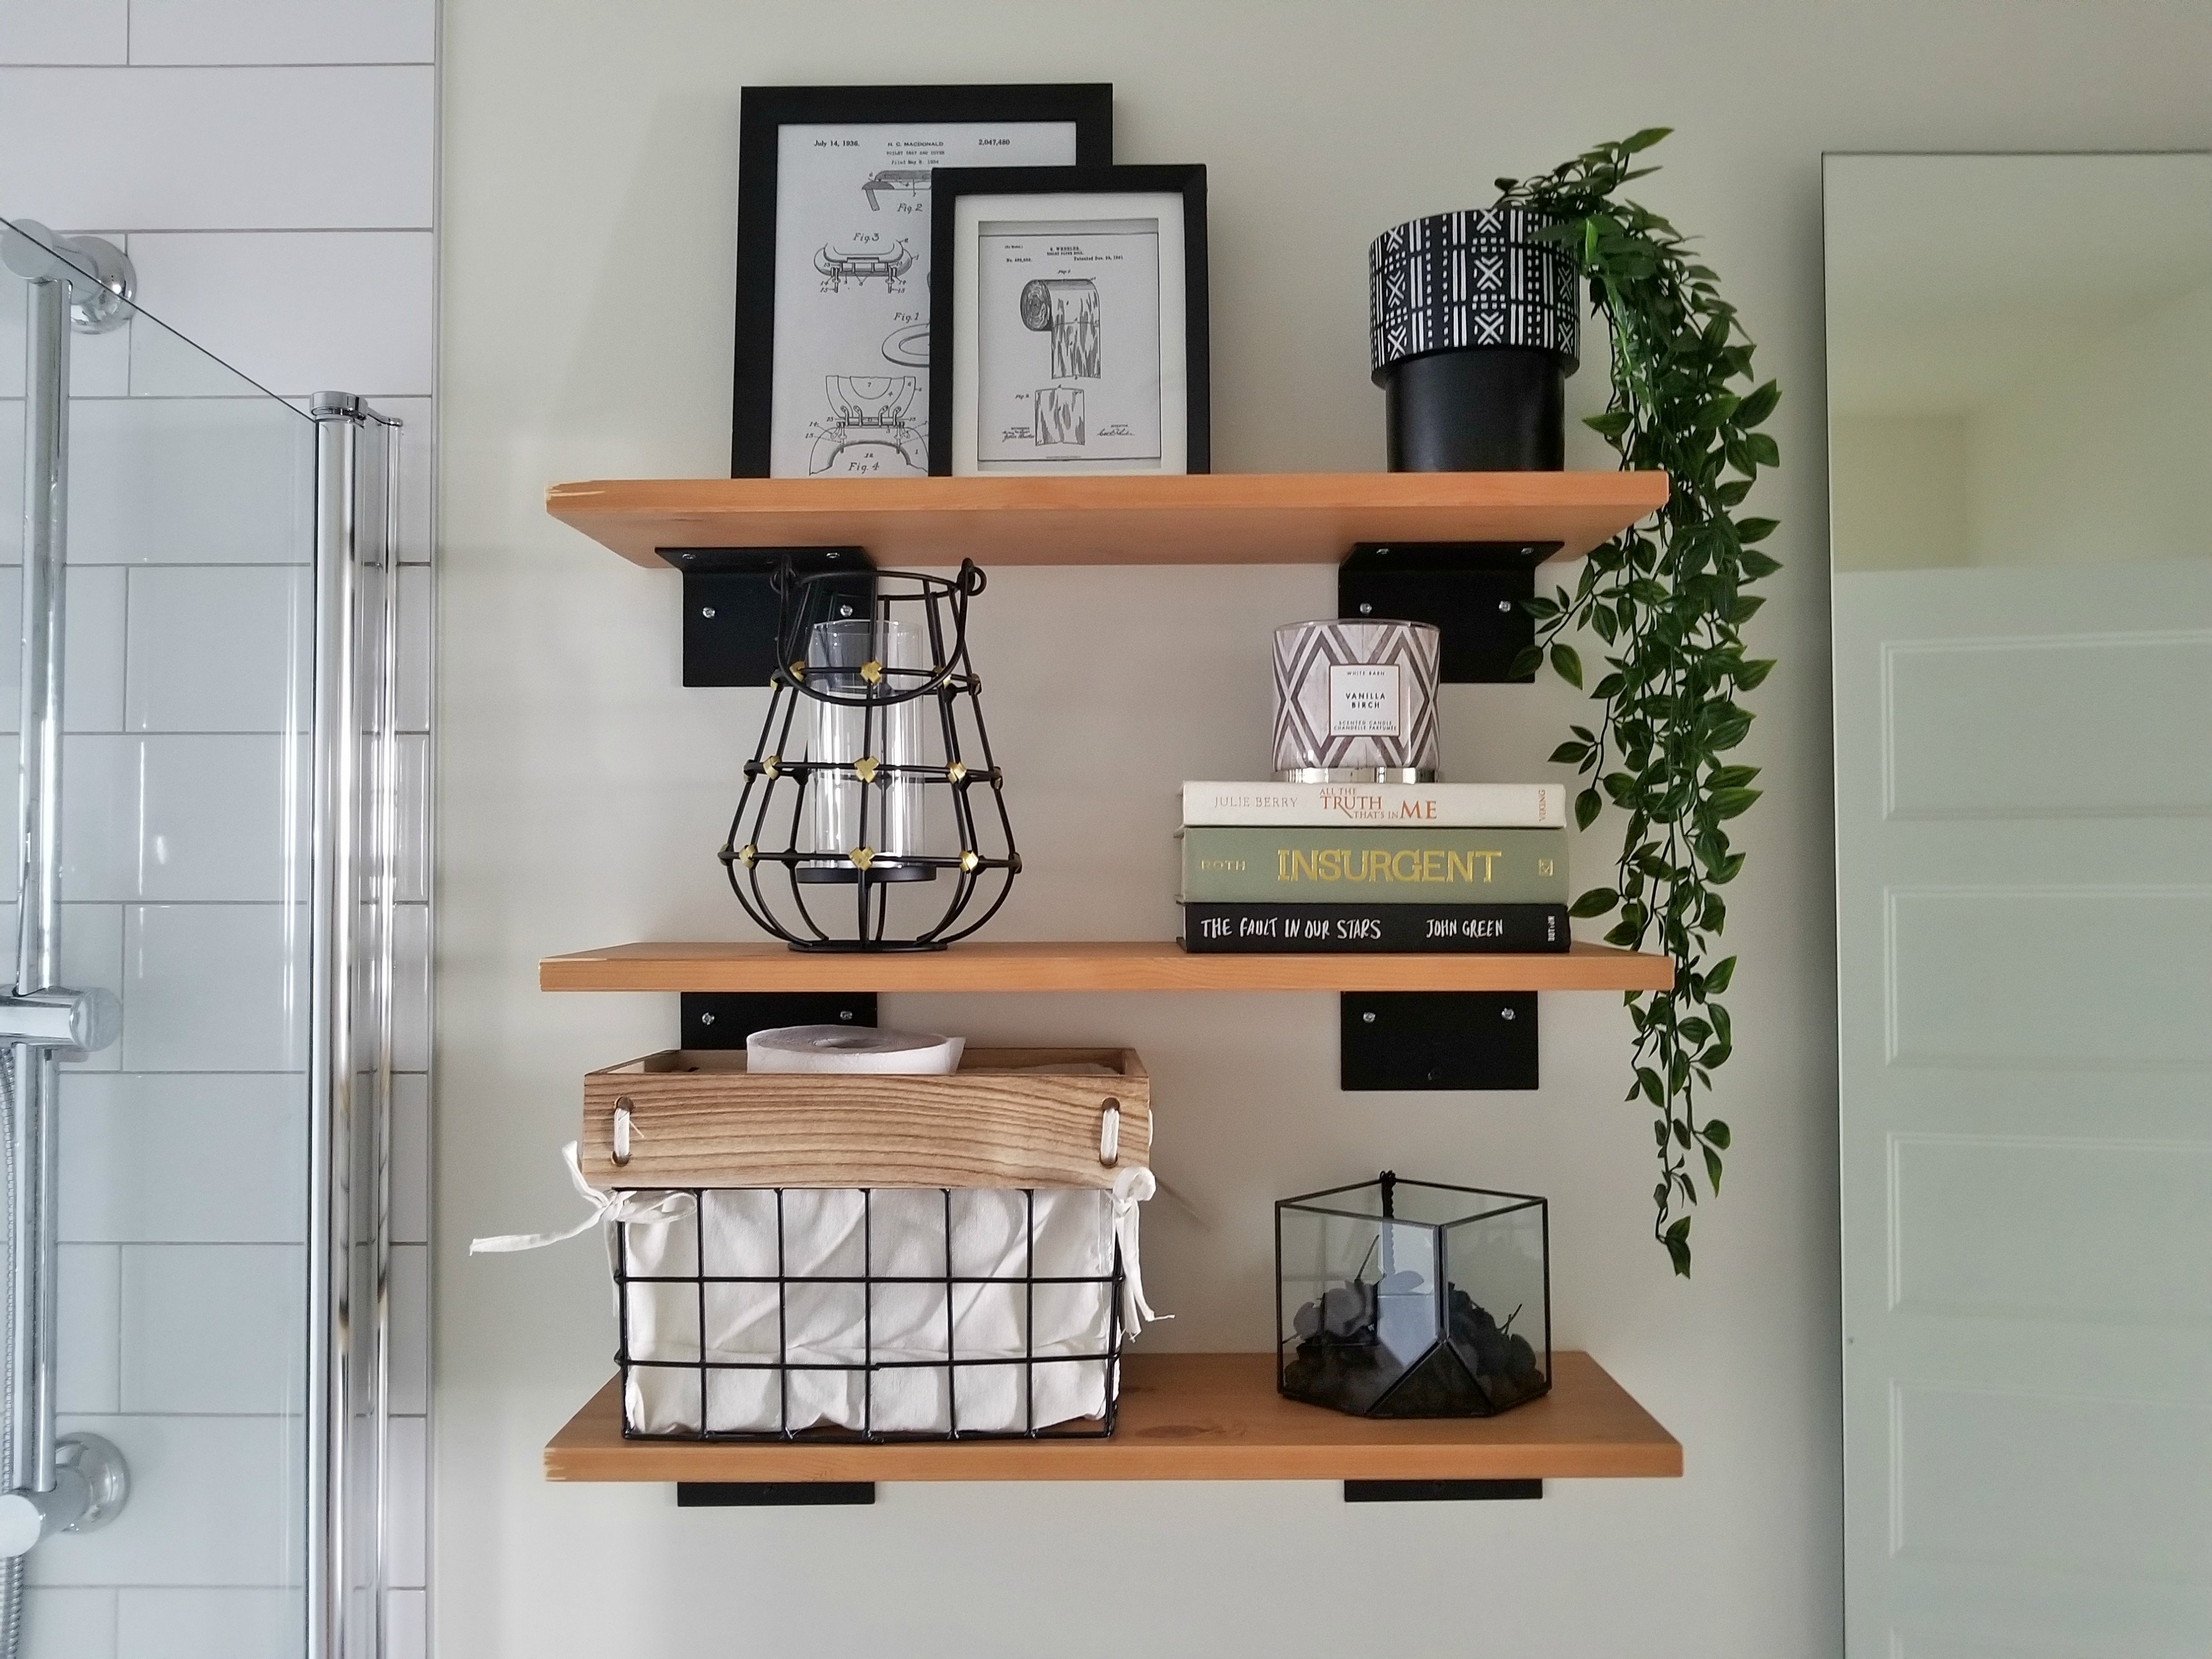 ikea wall shelves how to hang shelves in 3 easy steps. Black Bedroom Furniture Sets. Home Design Ideas